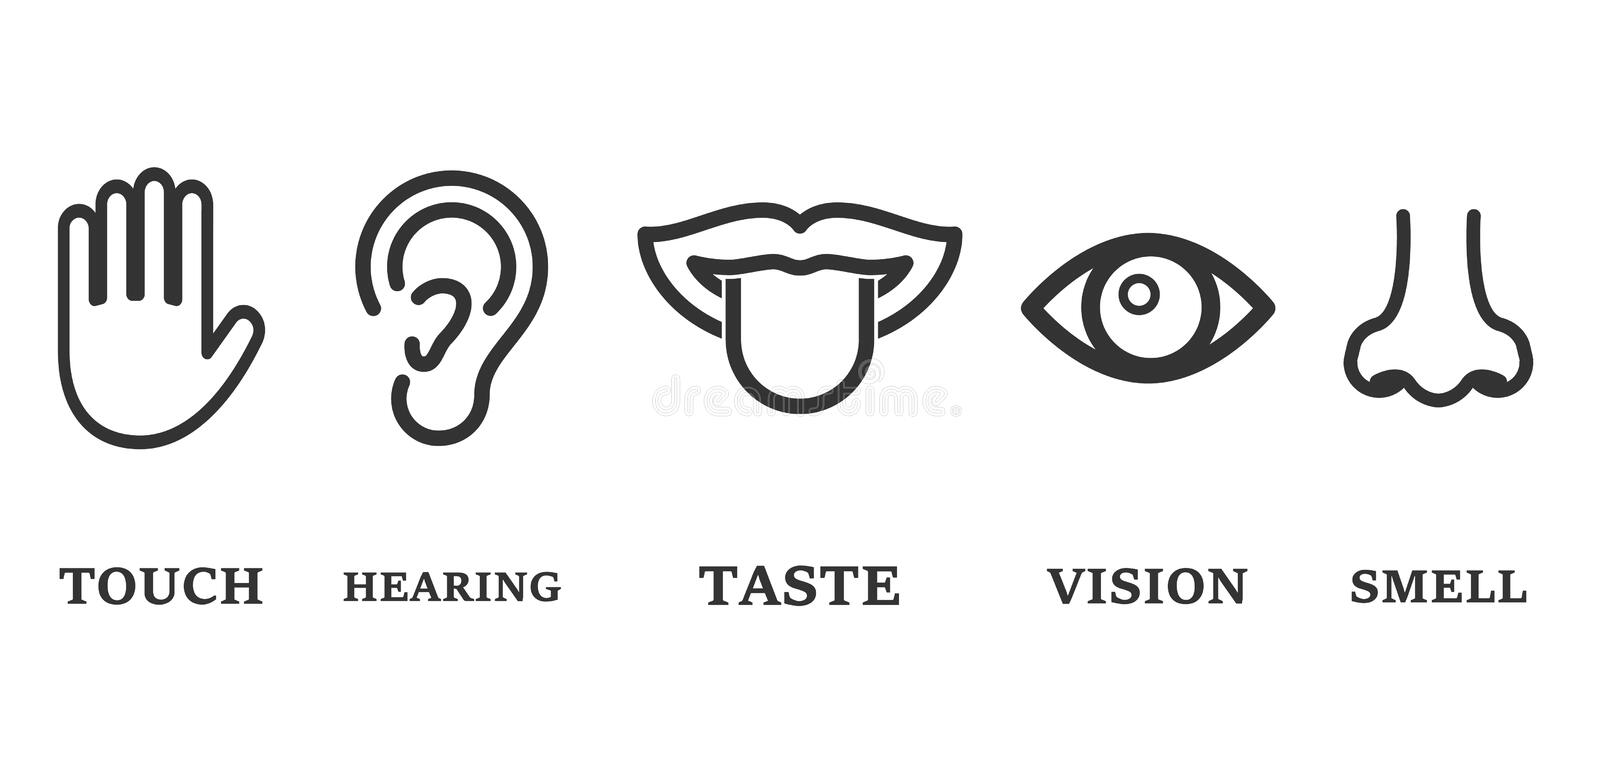 Icon set of five human senses: vision (eye), smell (nose), hearing (ear), touch (hand), taste (mouth with tongue). Simple line ico royalty free illustration